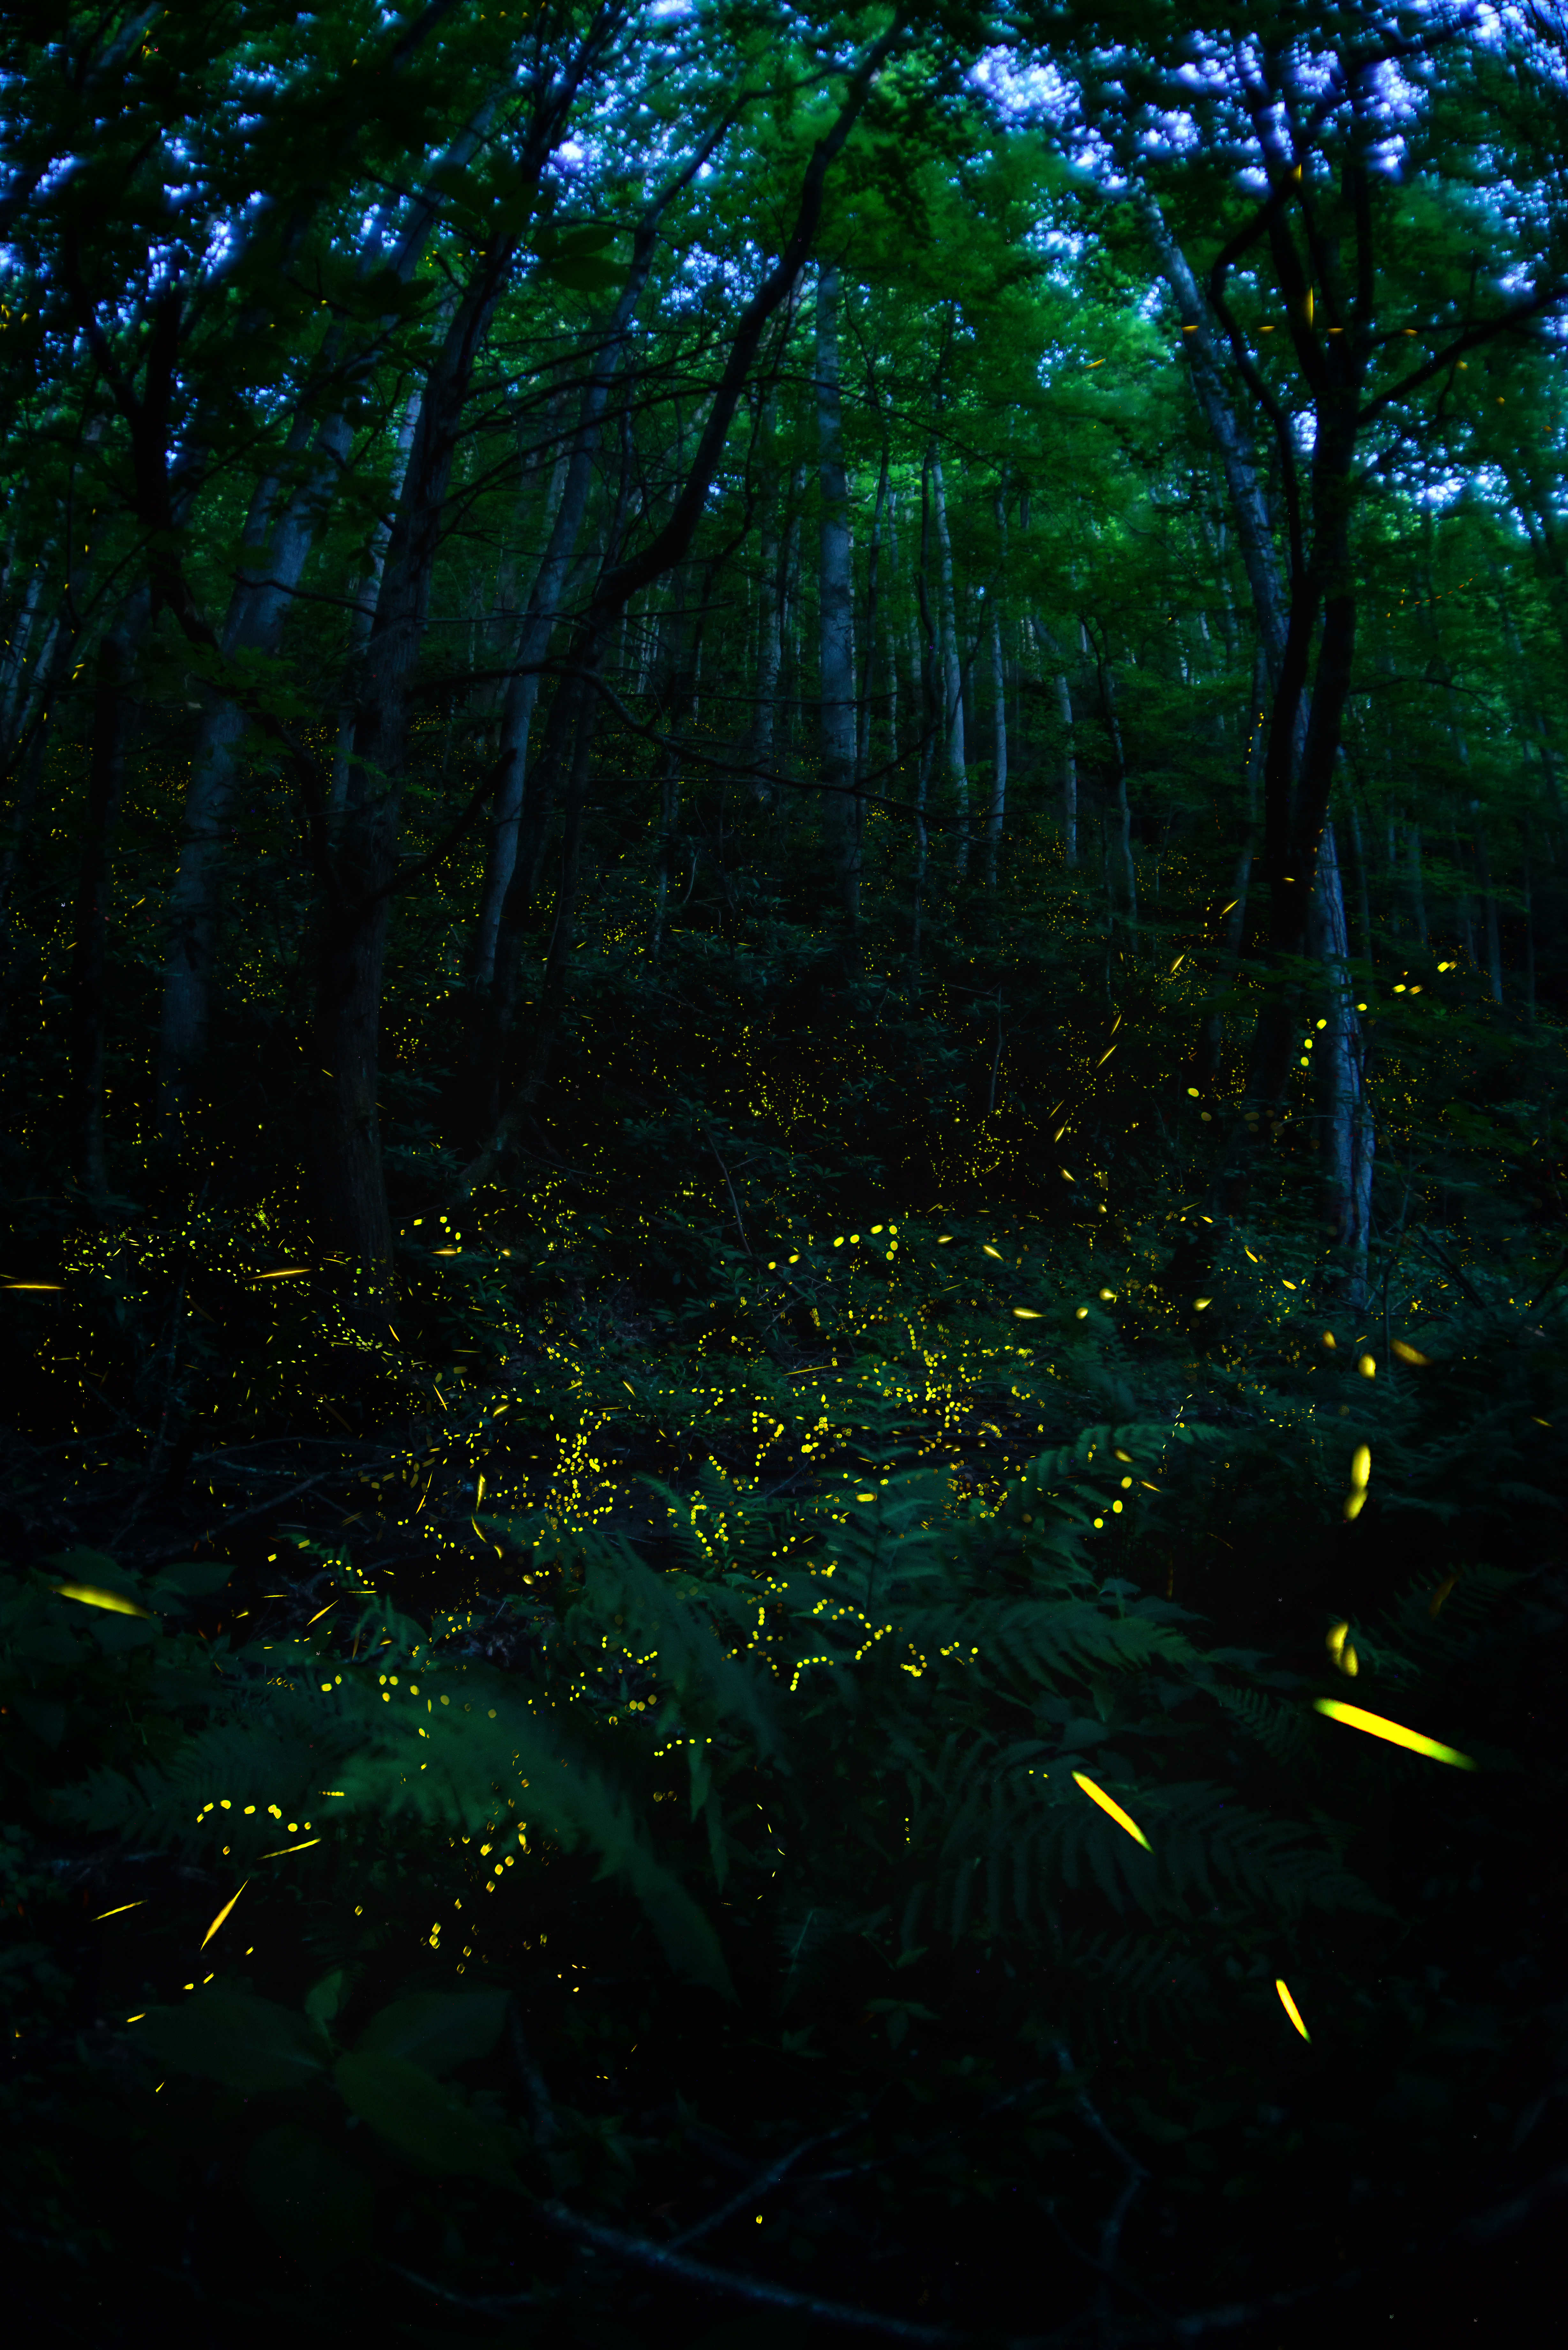 Synchronous fireflies in Great Smoky Mountains, in Tennessee.